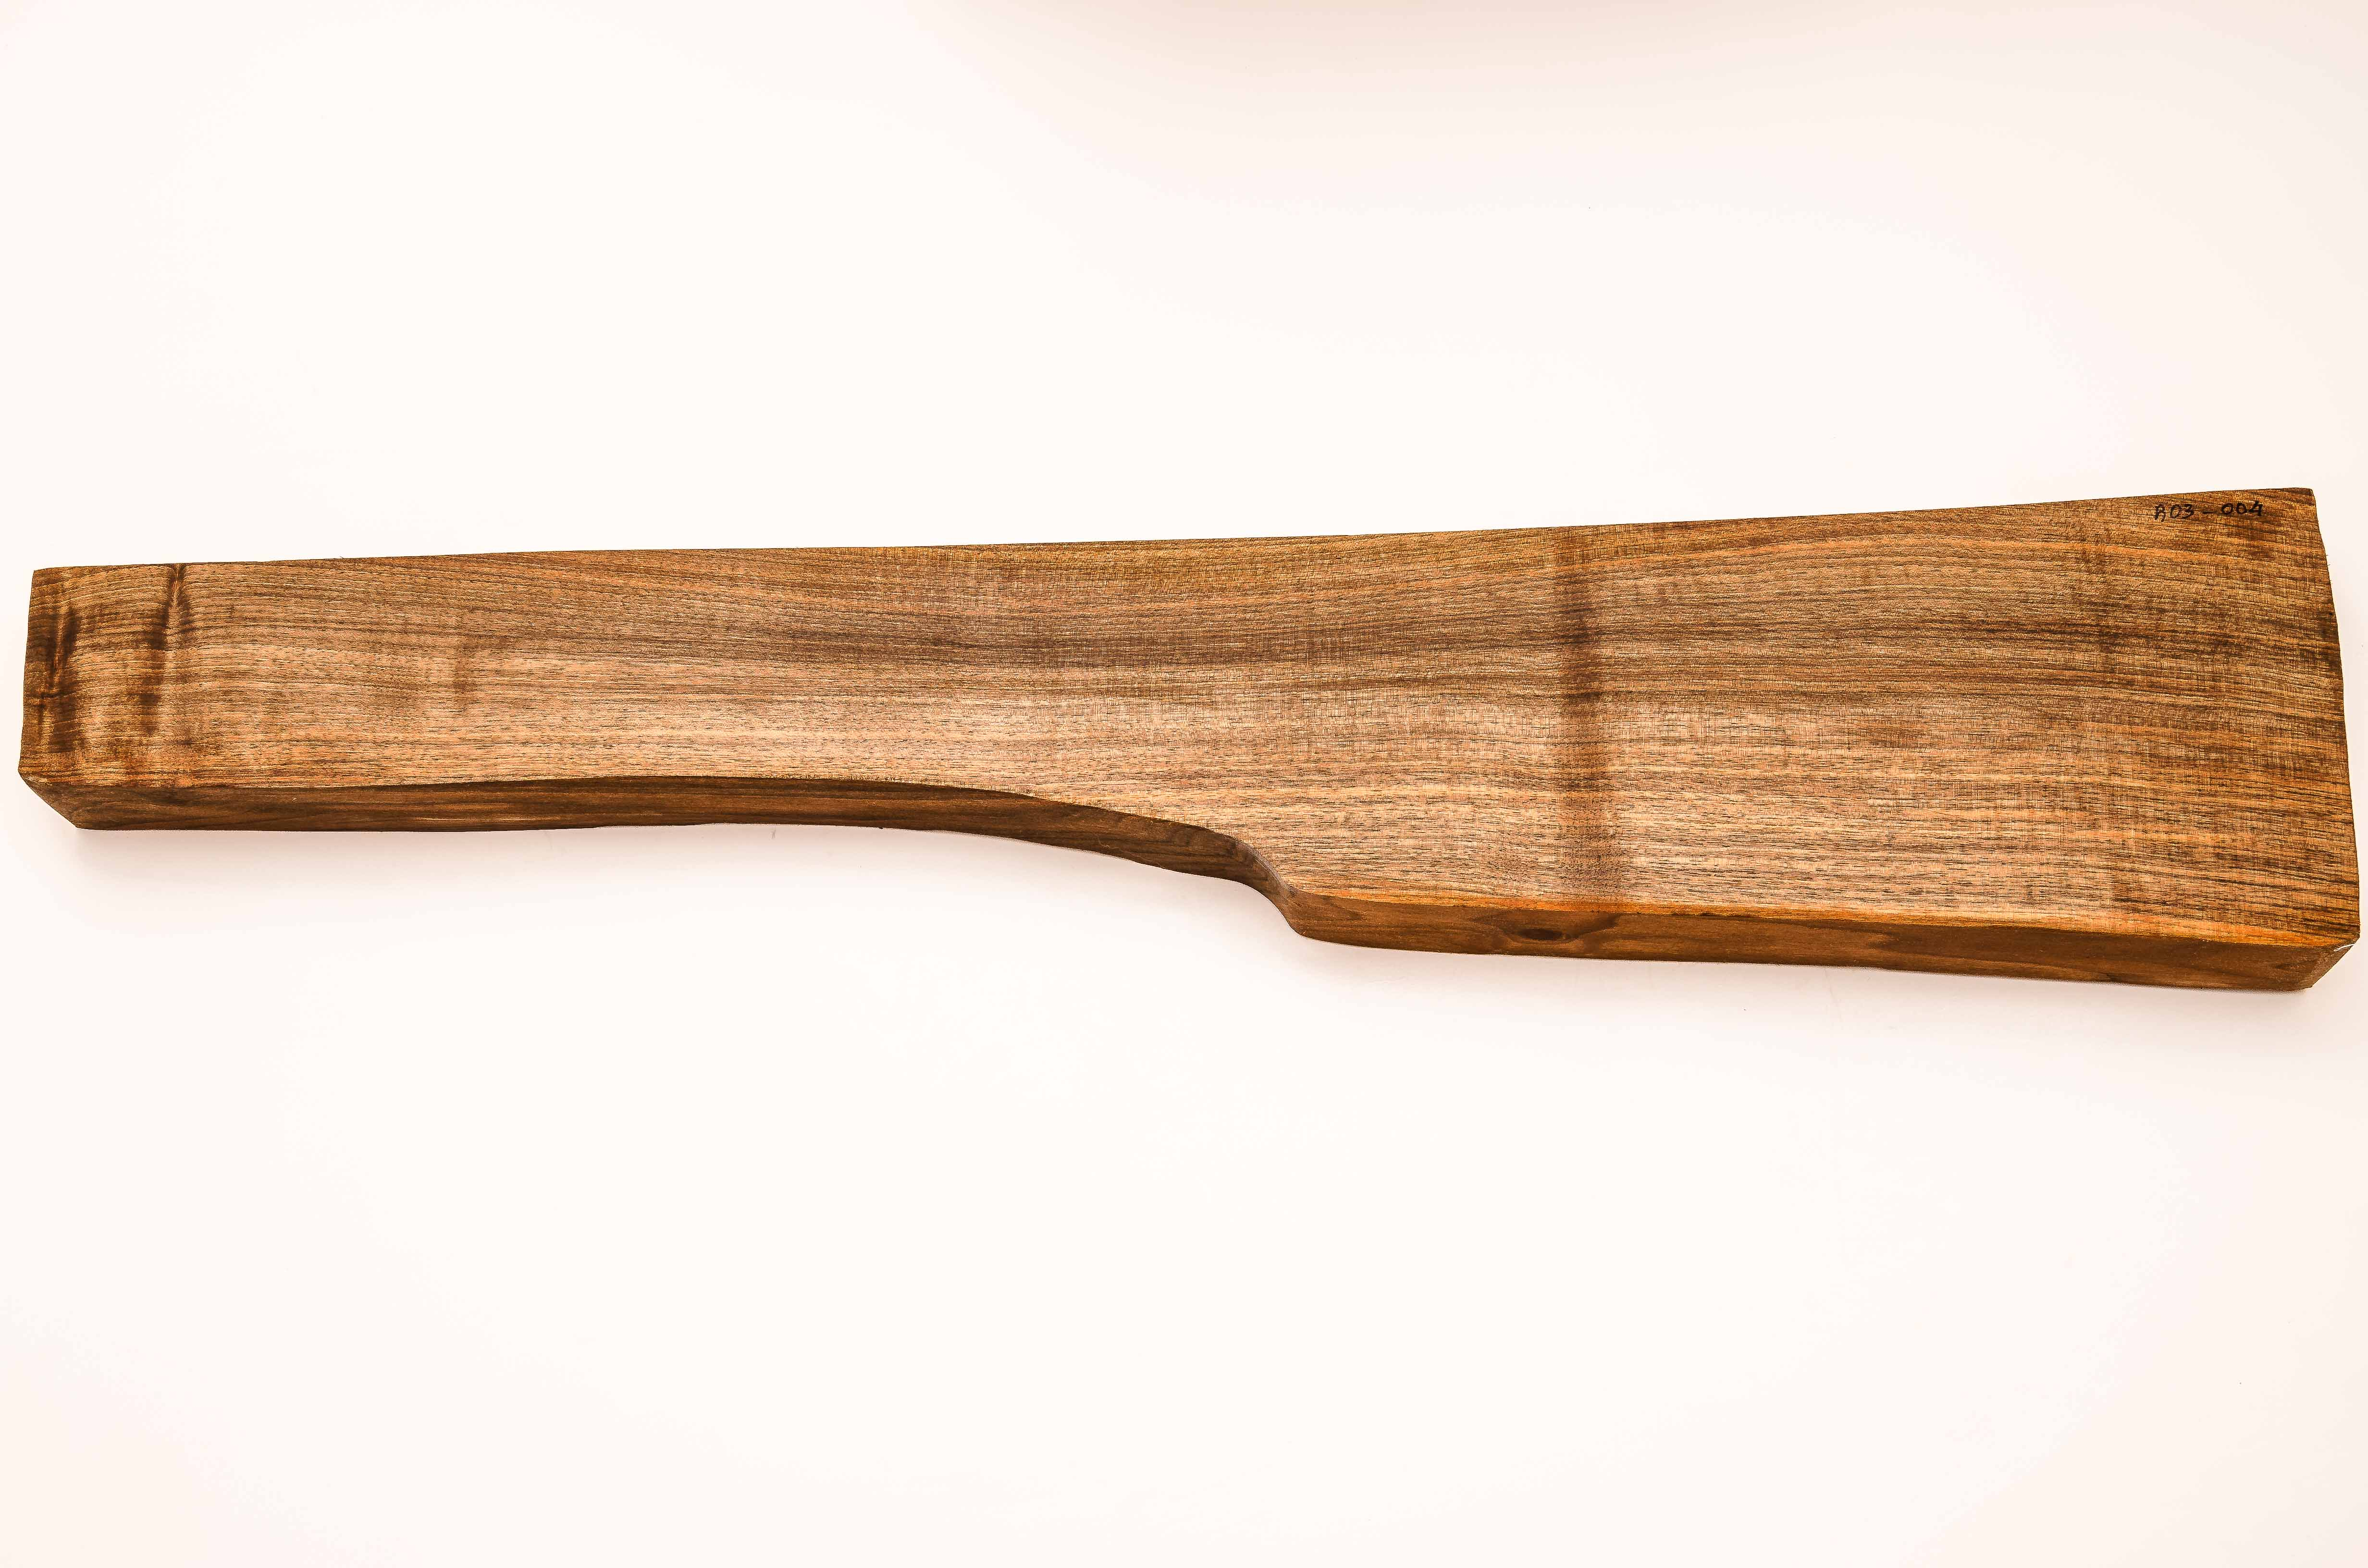 walnut_stock_blanks_for_guns_and_rifles-0660